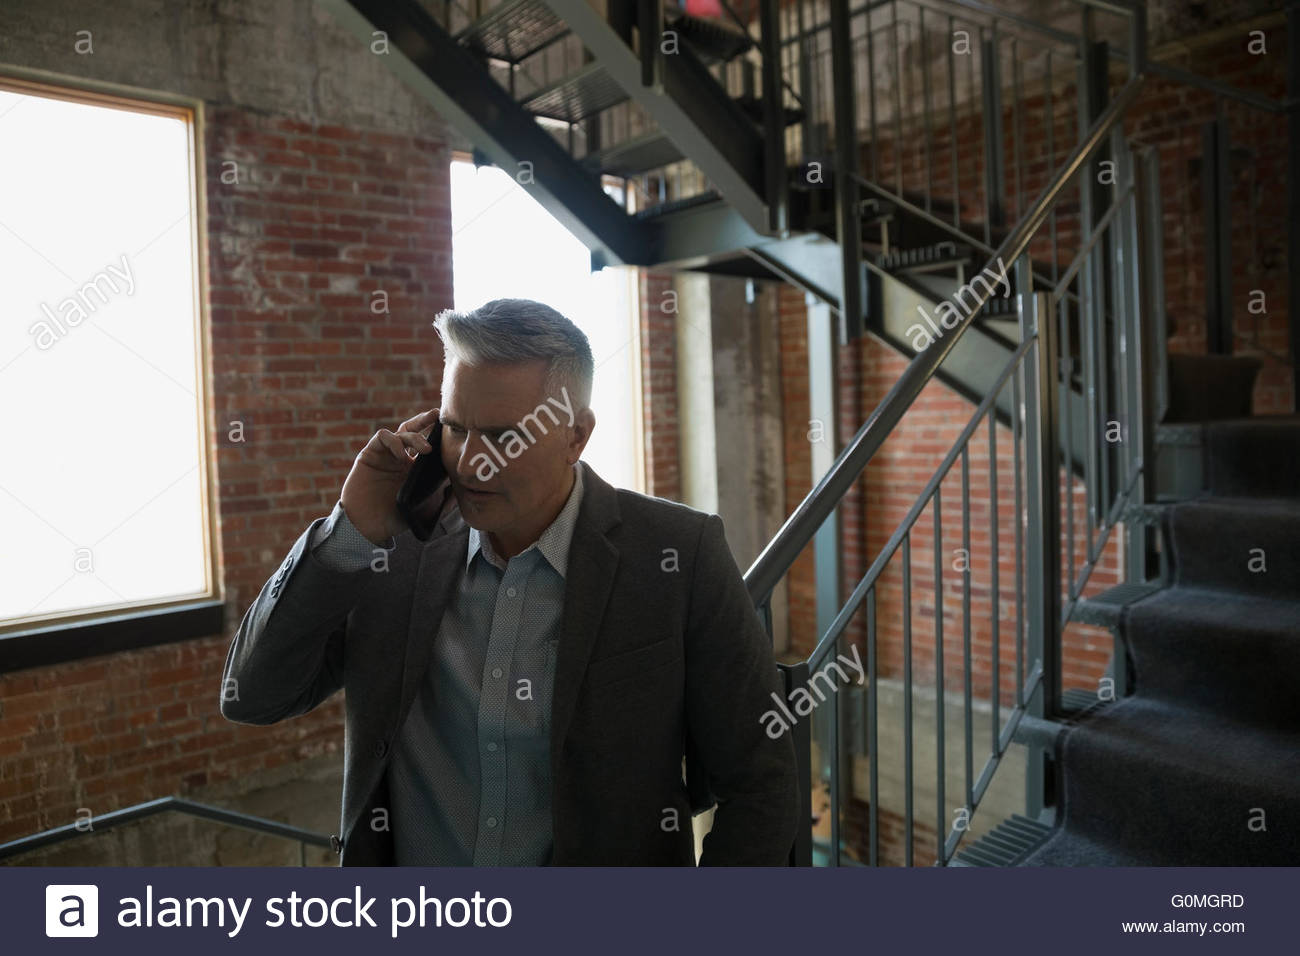 Businessman talking on cell phone in stairwell Stock Photo